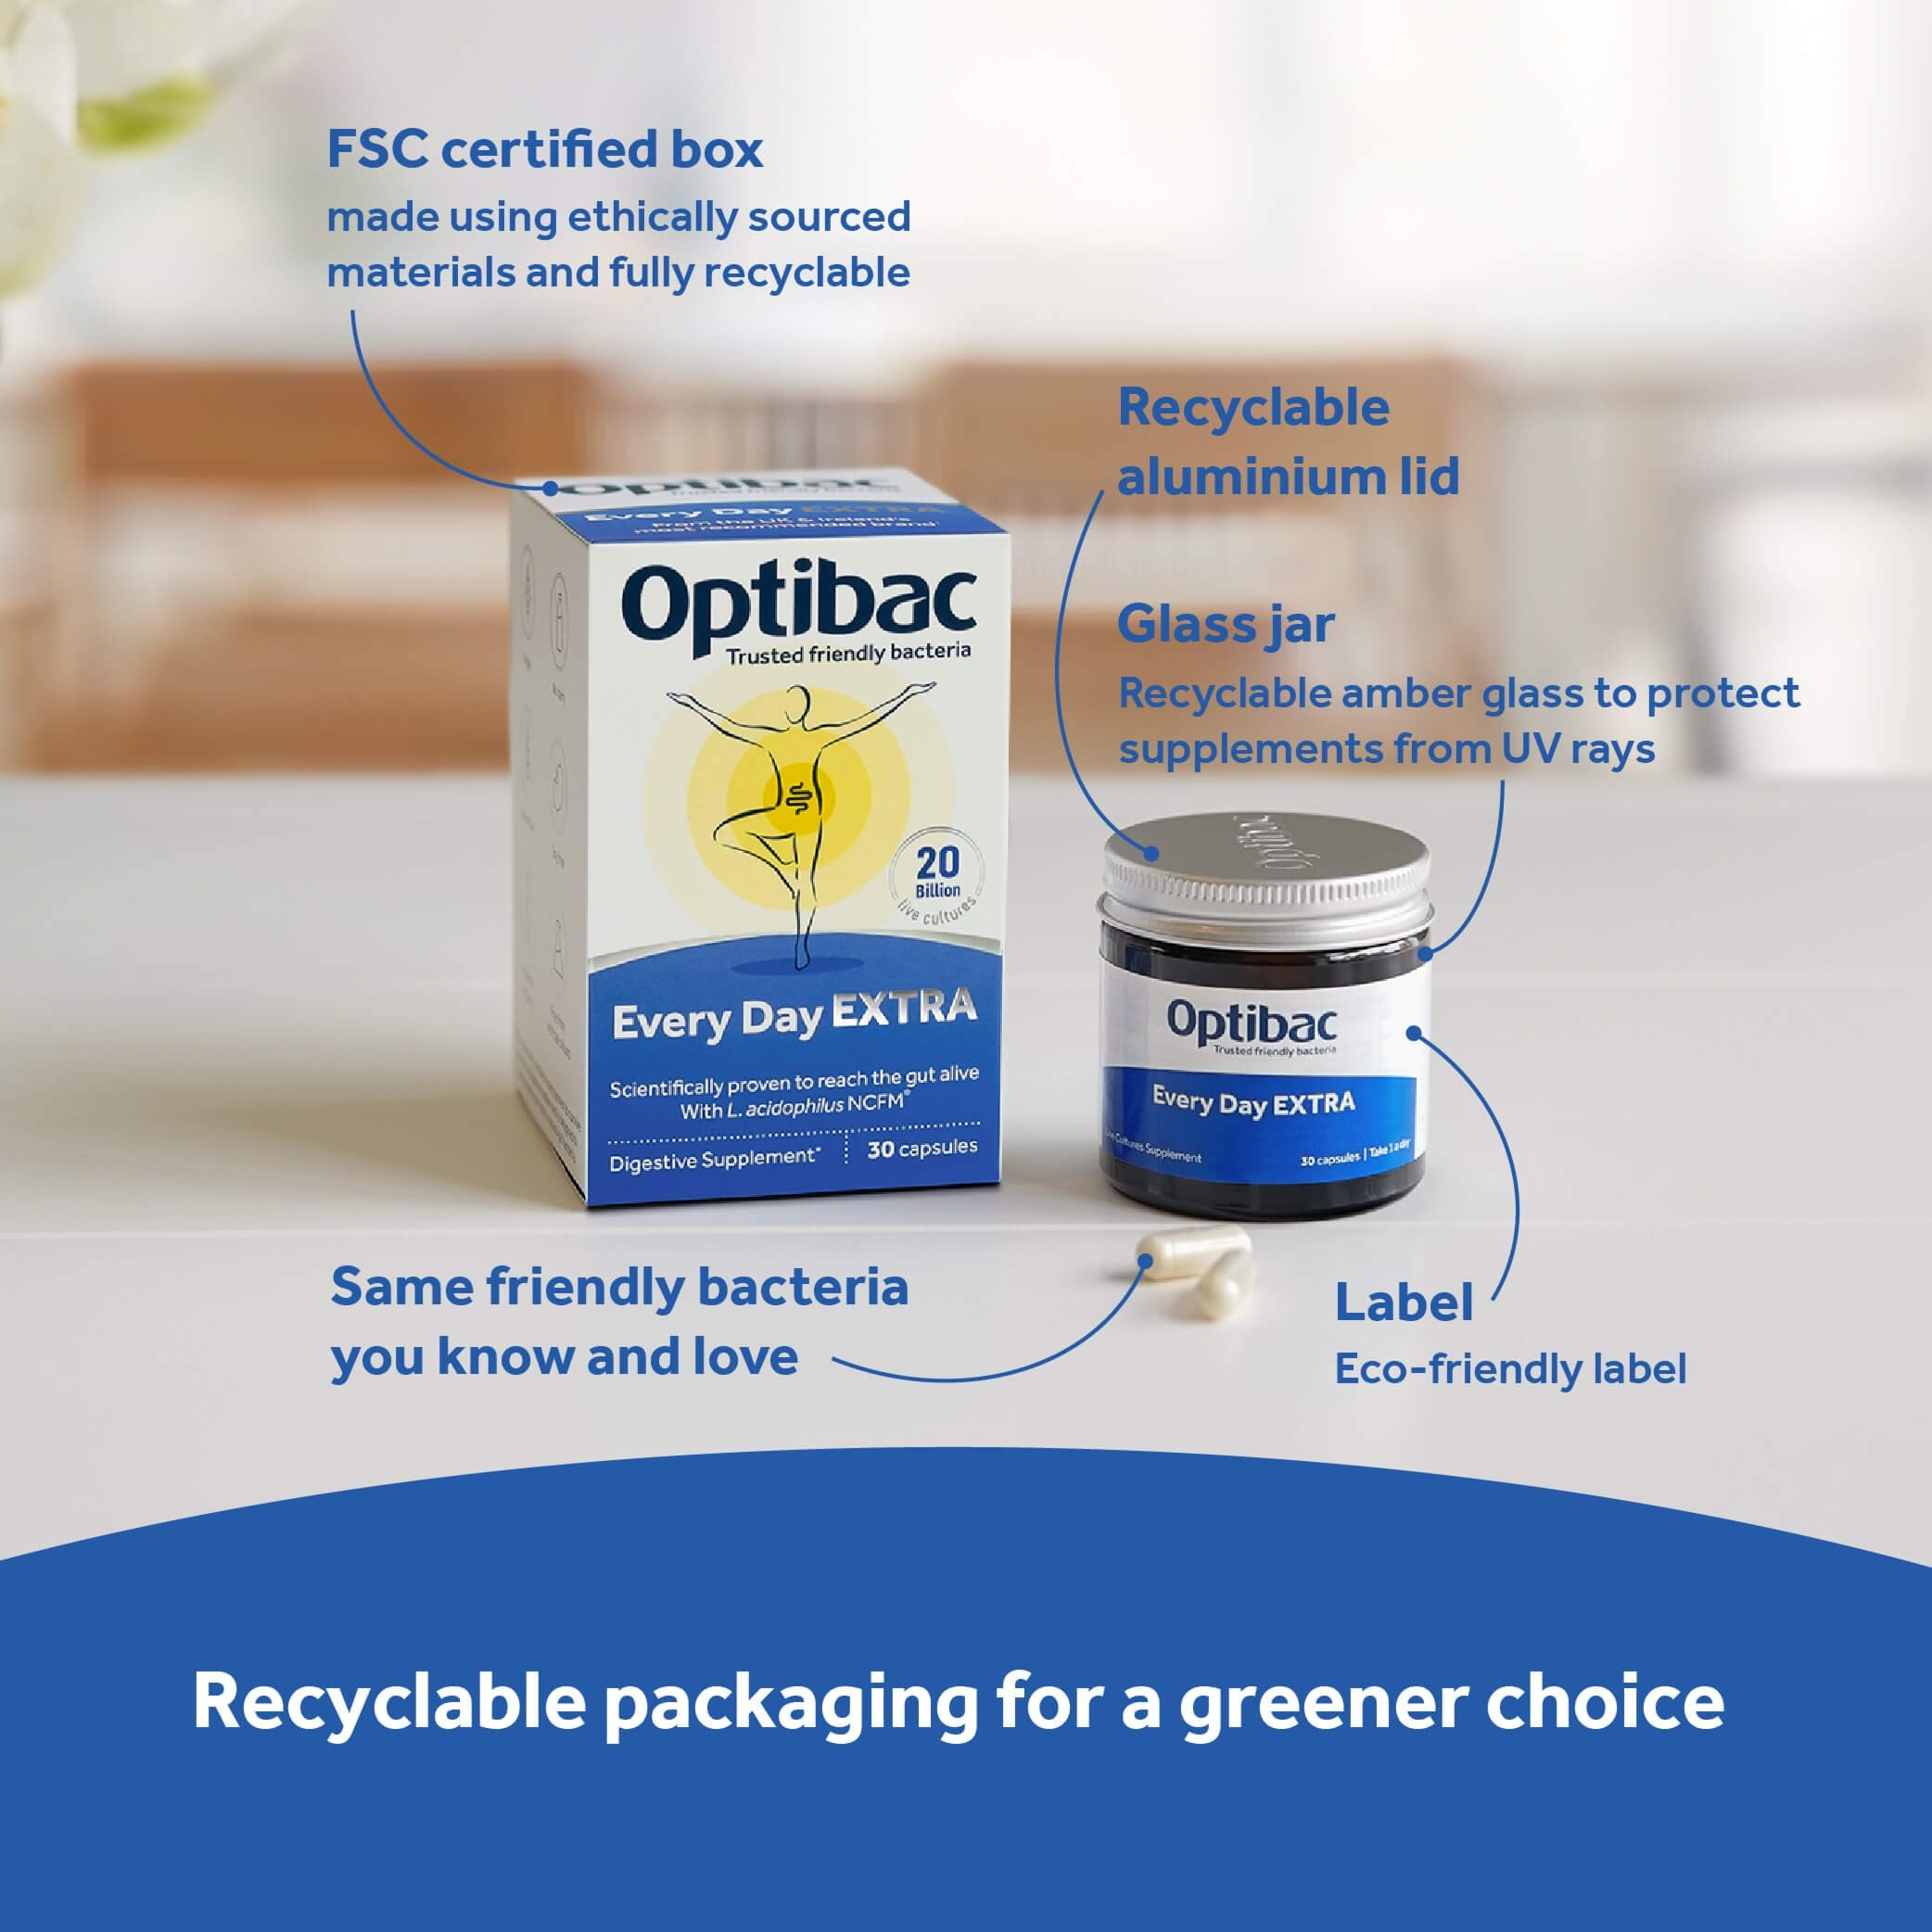 Every Day EXTRA recyclable